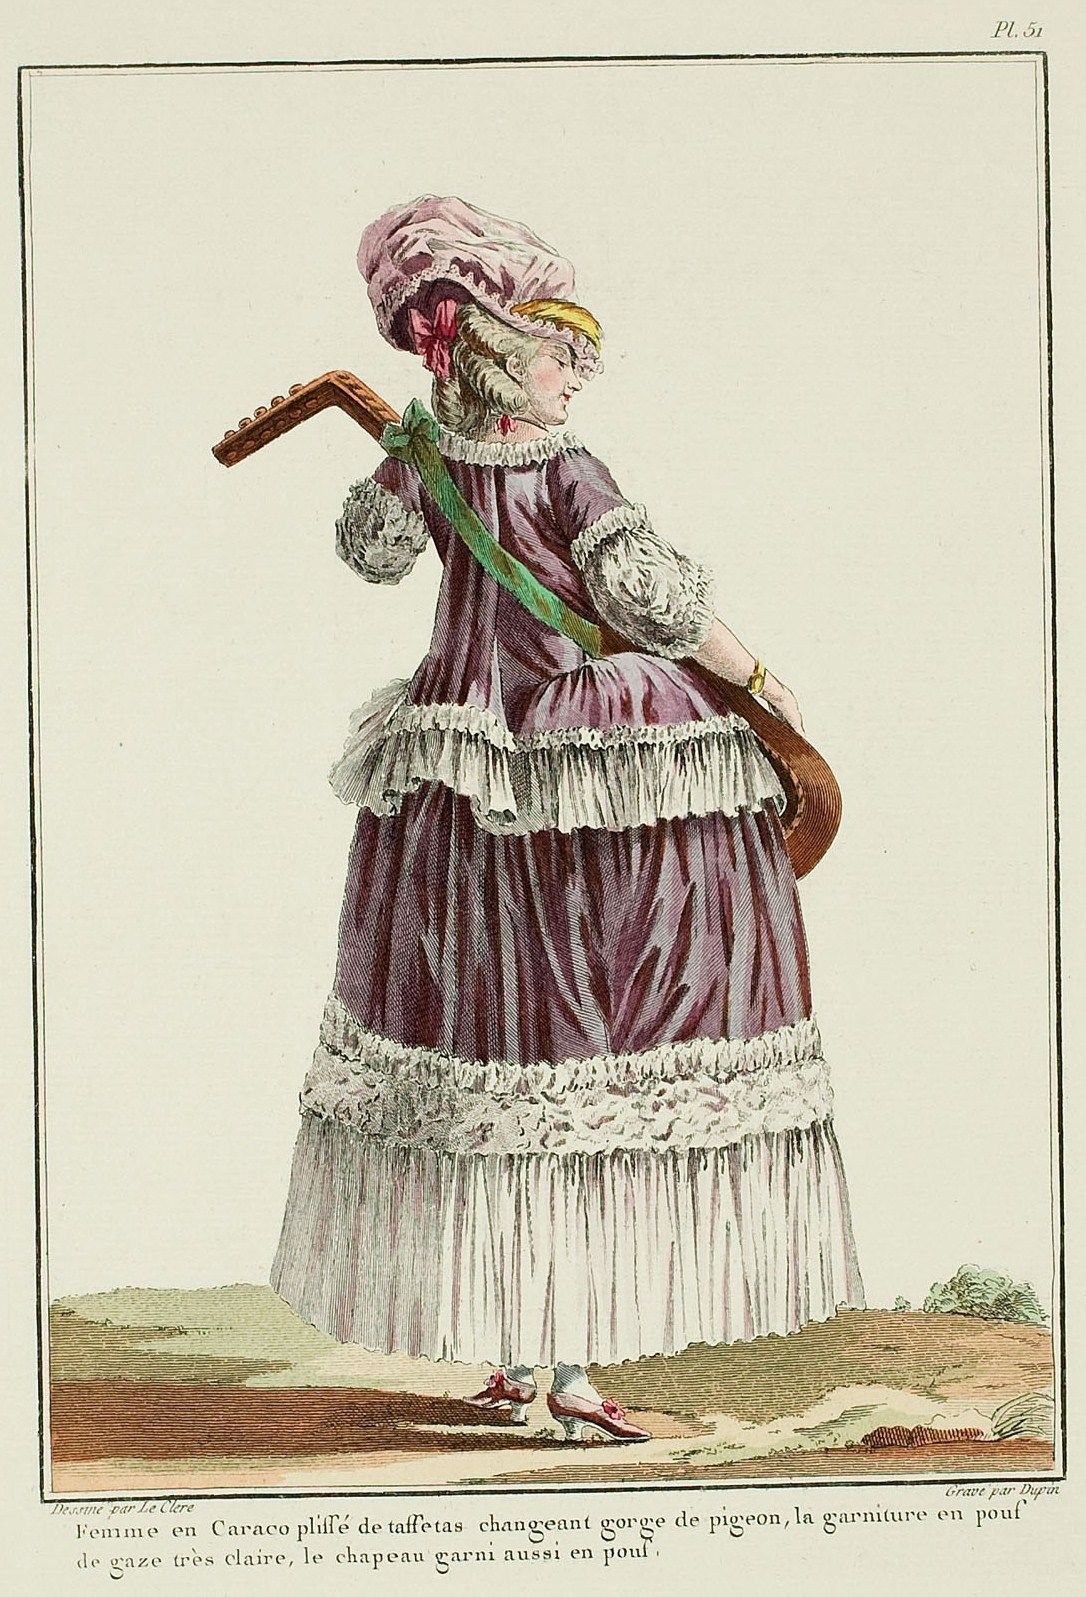 """""""Pleated caraco, or français caraco, seen from the back, trimmed with flounces; the volant is headed with a matching trim. The sabot cuffs flare in the middle and taper at the ends, and are trimmed with two poufed bands. Hat à l'Italienne, almost entirely concealing the top of her face; two oblique curls, braided chignon held up with a bow at the back of the head. Shoes match the color of the caraco, fastened with rosettes"""""""